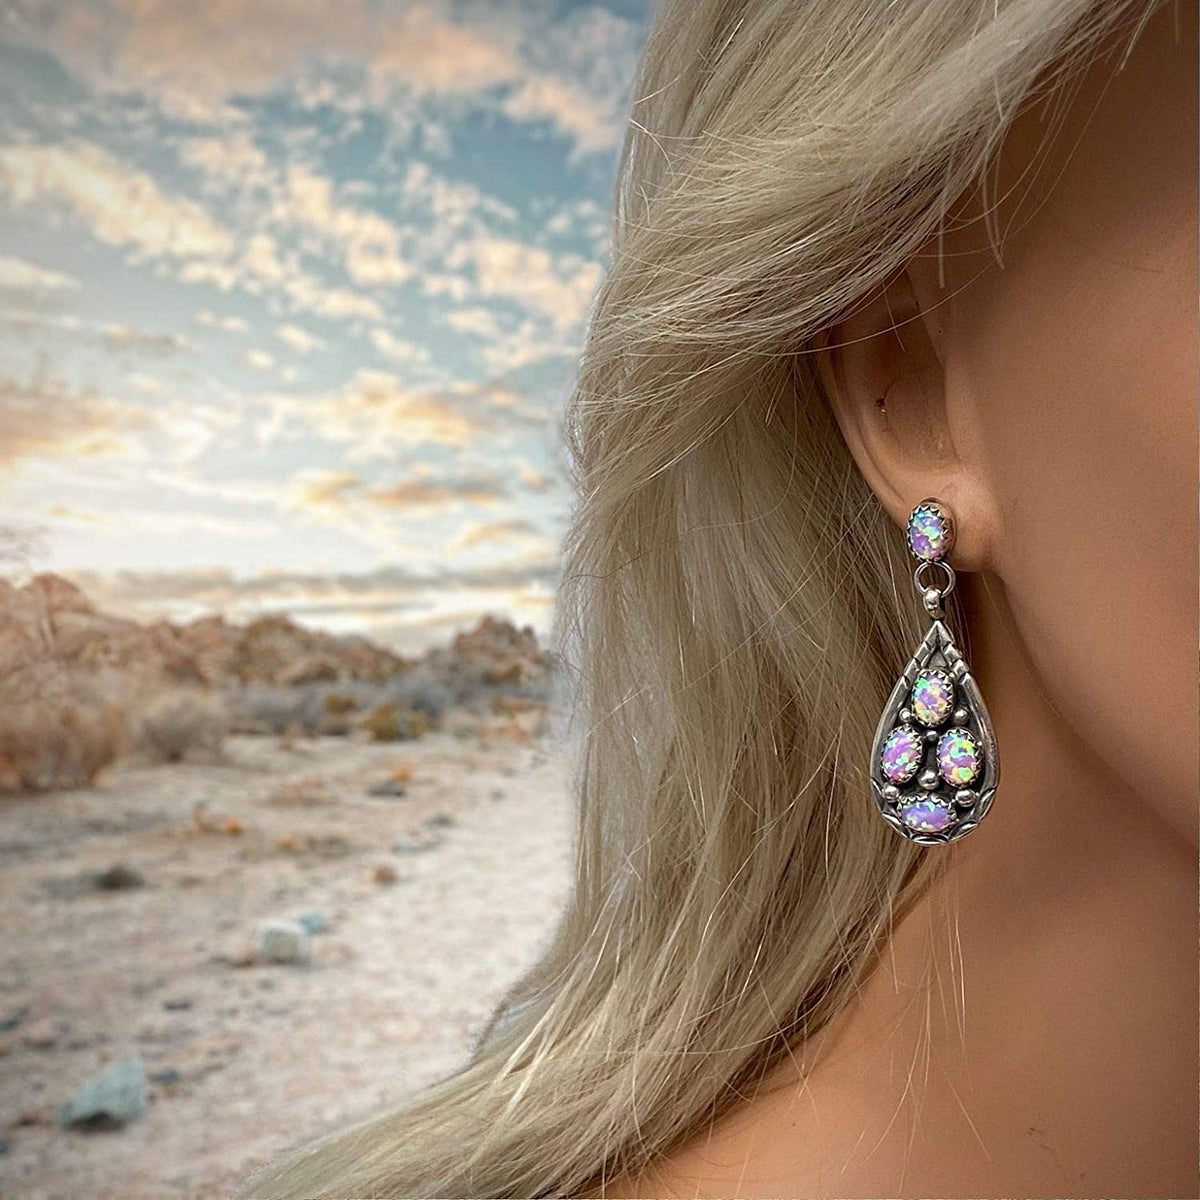 Pink Desert Opal Earrings, 925 Sterling Silver, Native American USA Handmade, Post Style, Nickle Free, Pink Synthetic Opal